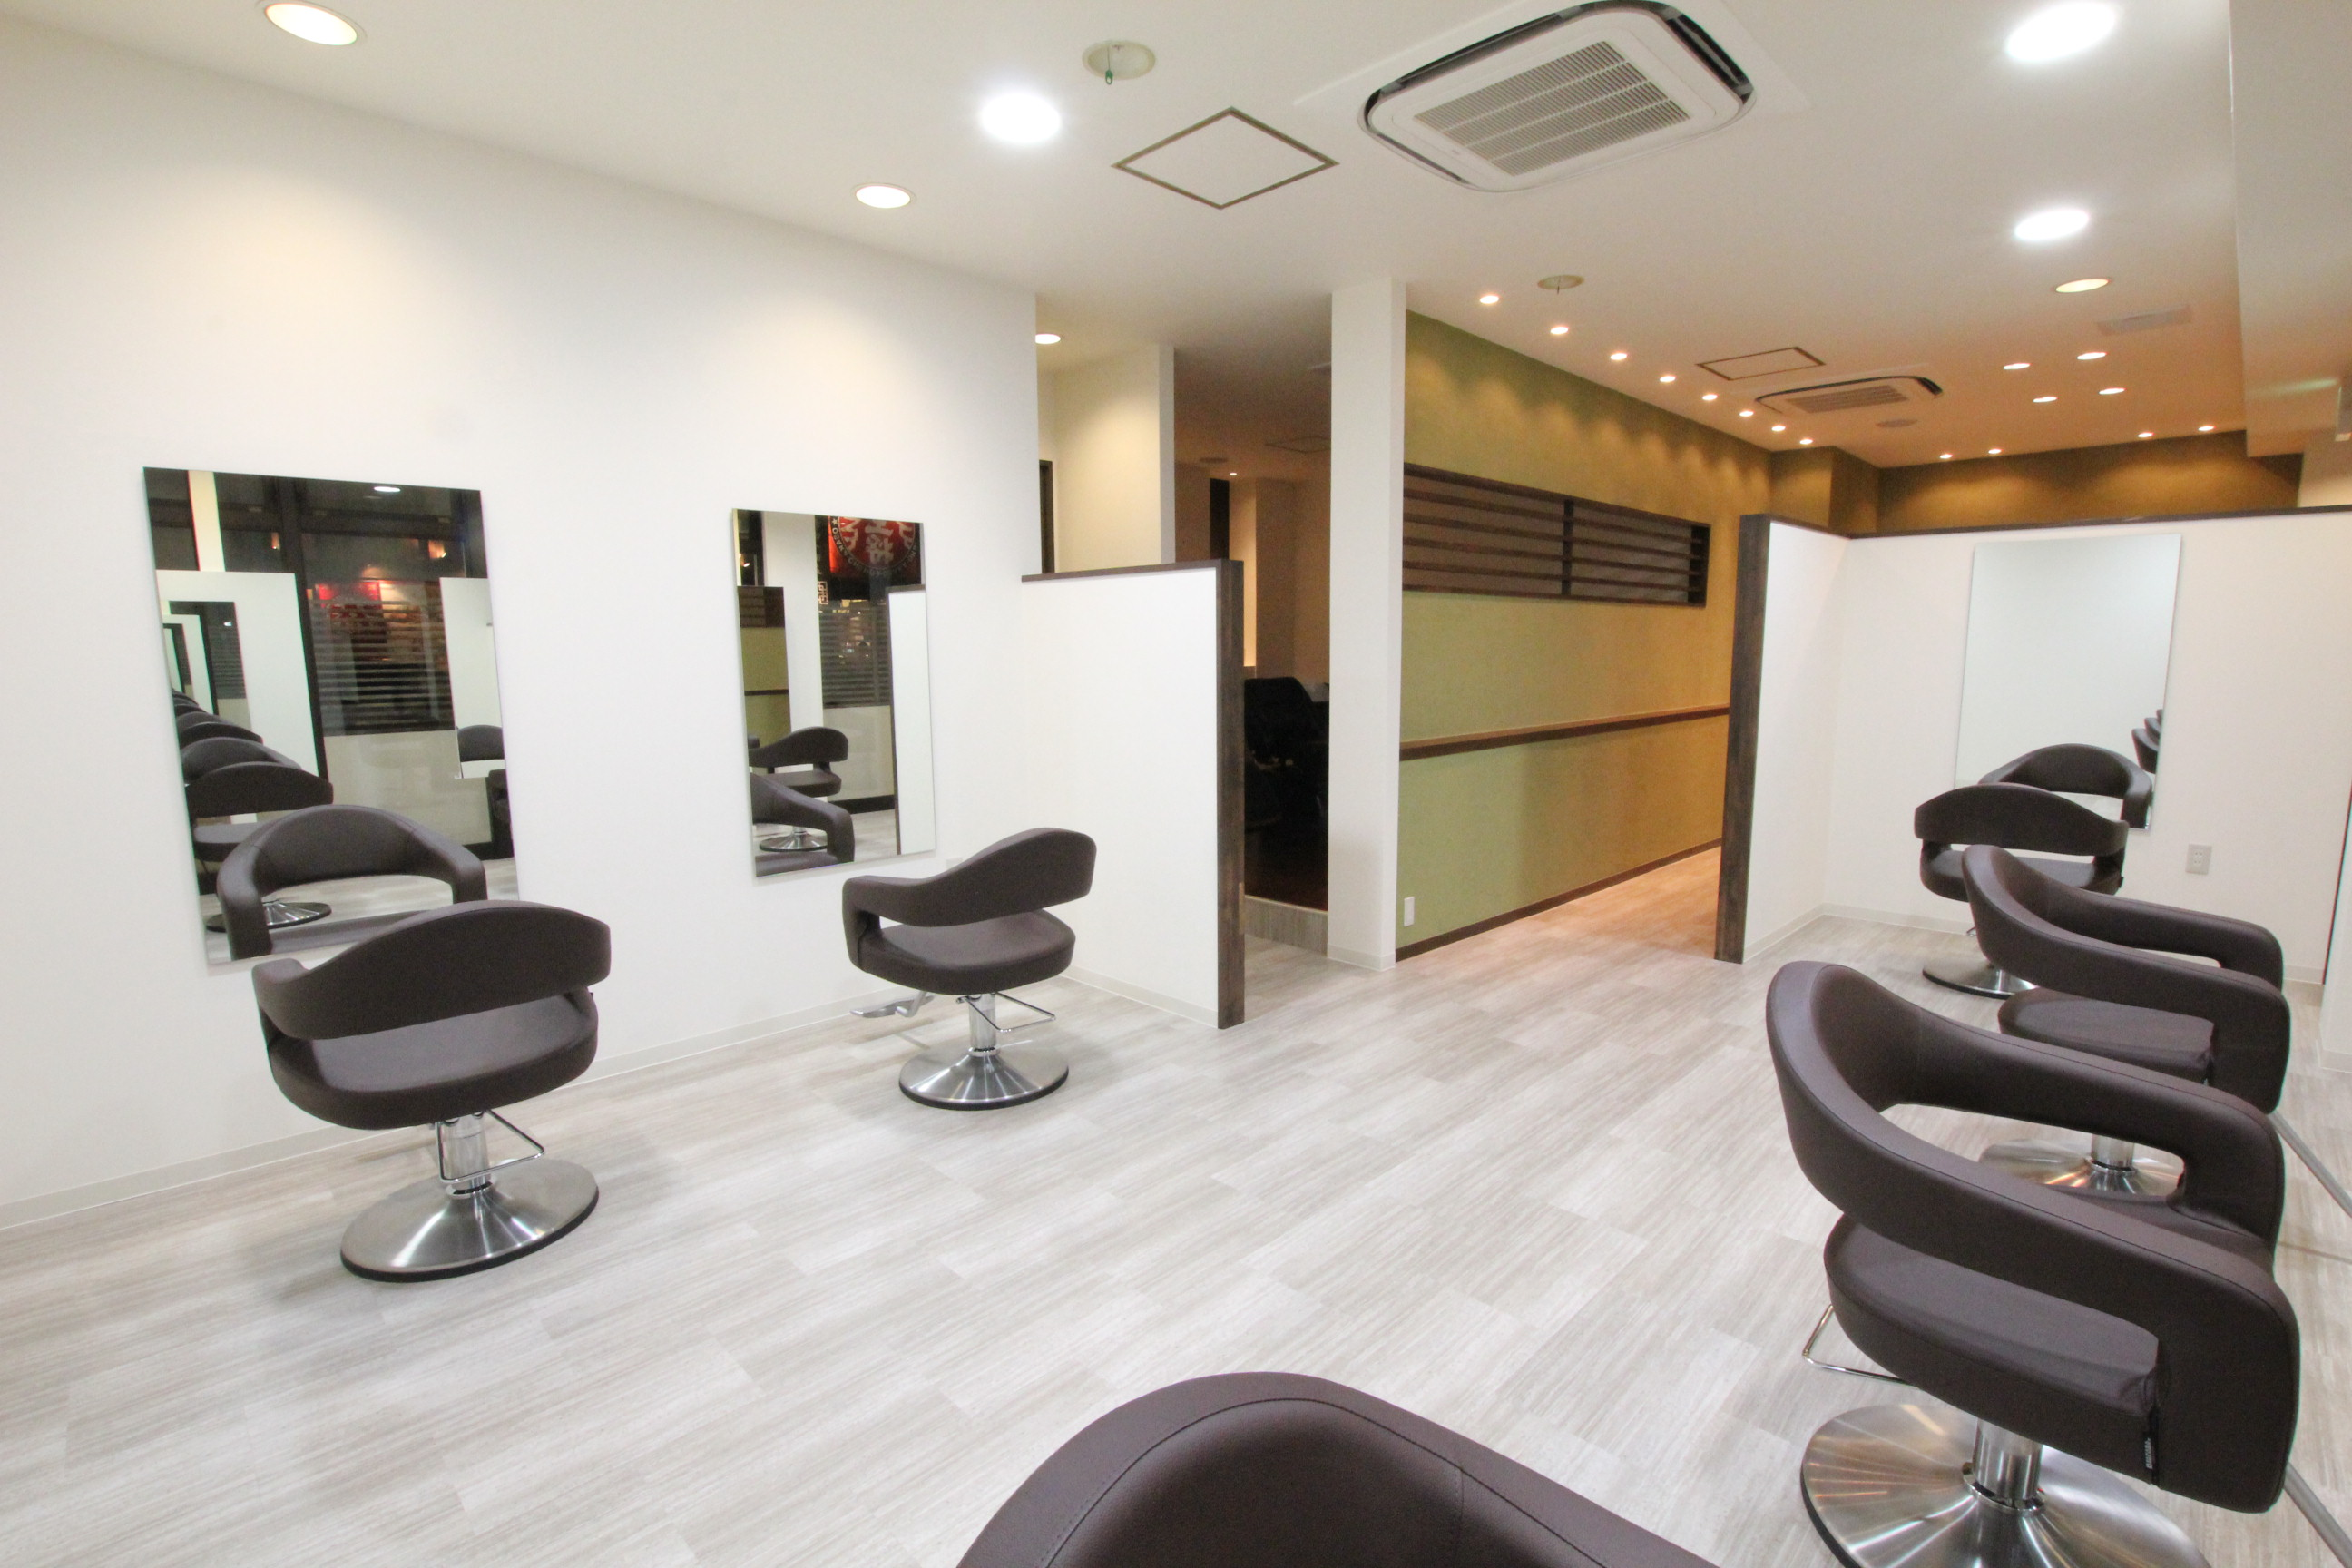 aluu hair design 仁川店